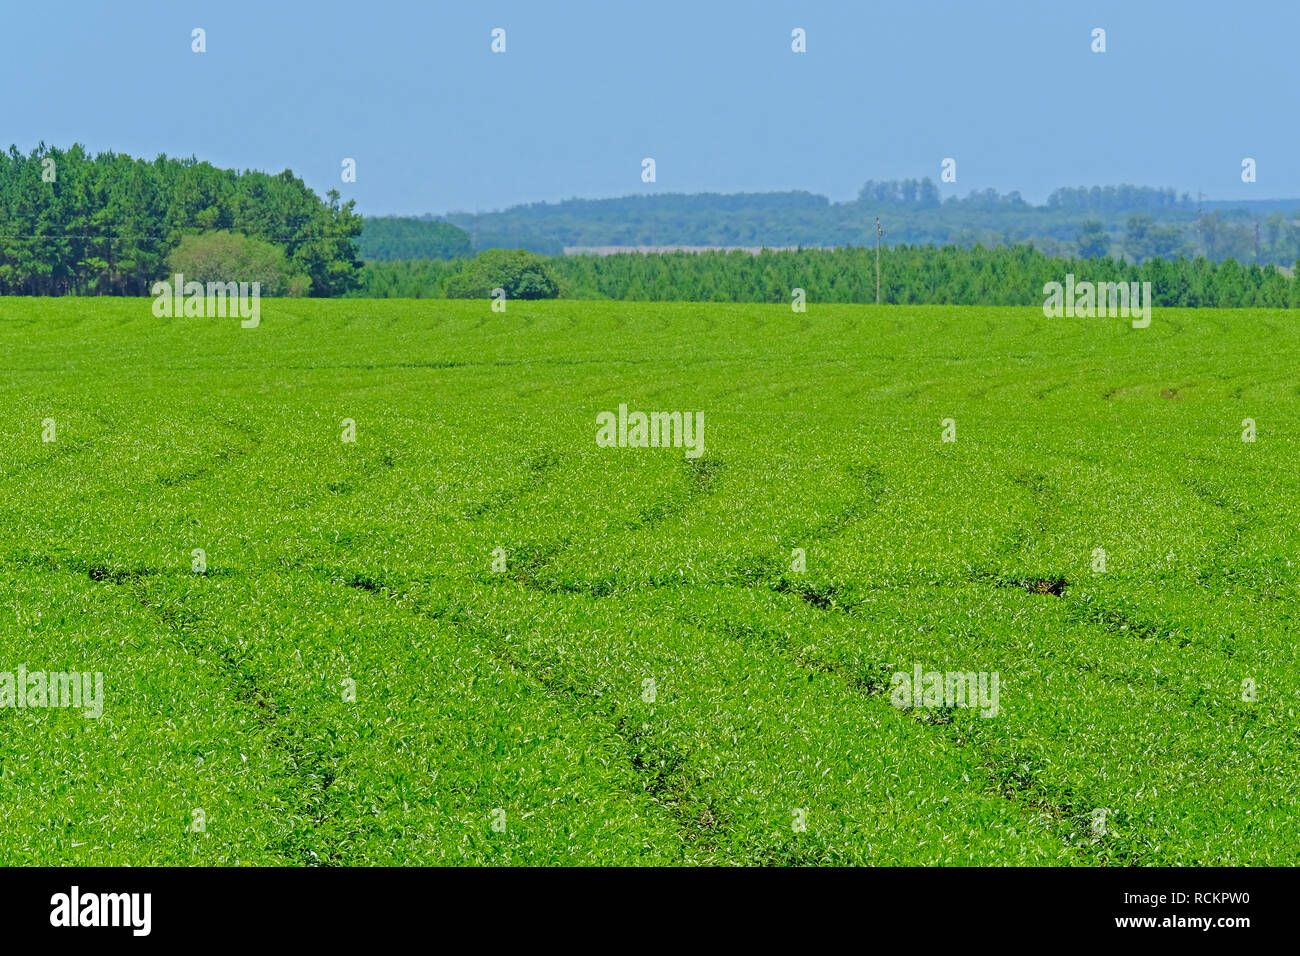 Beautiful green Mate tea plantation field in province Misiones, Argentina - Stock Image